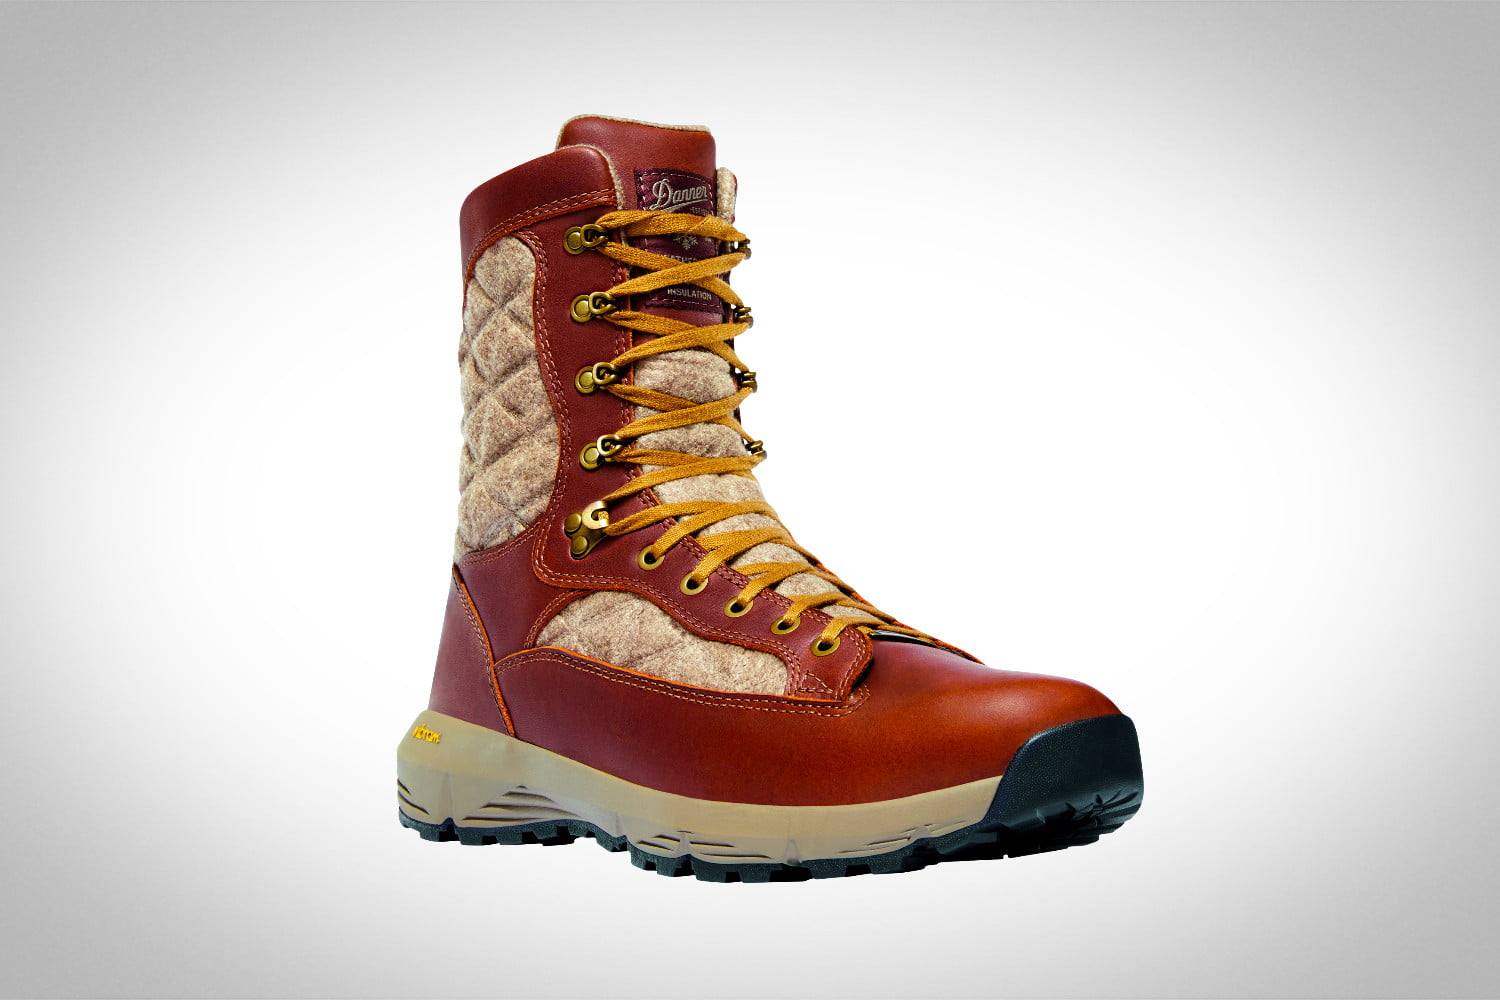 55d8aea36cd Stay Warm and Dry in Danner's New Insulated Weatherized Boots ...